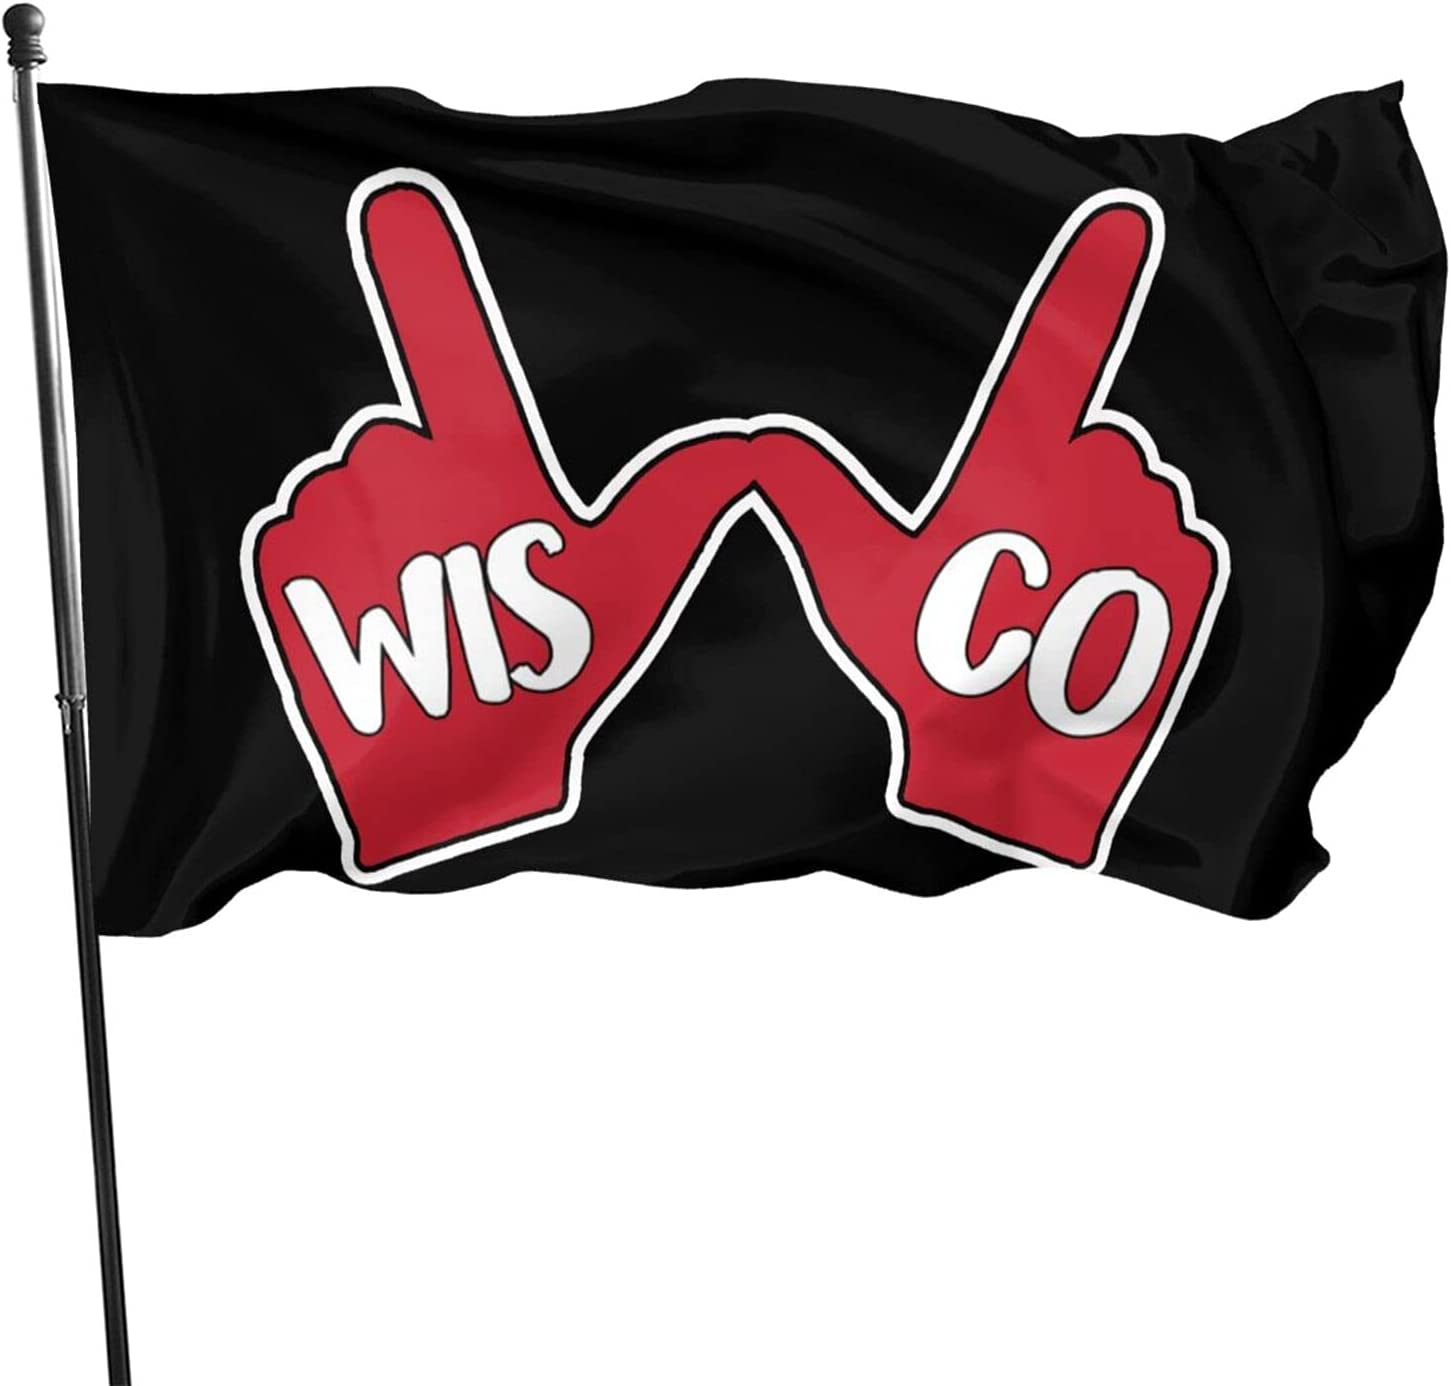 Wisconsin Badgers W Hand 3x5 Feet Strong Durable Flag Outdoor Indoor Decor Flags 3x5 Ft